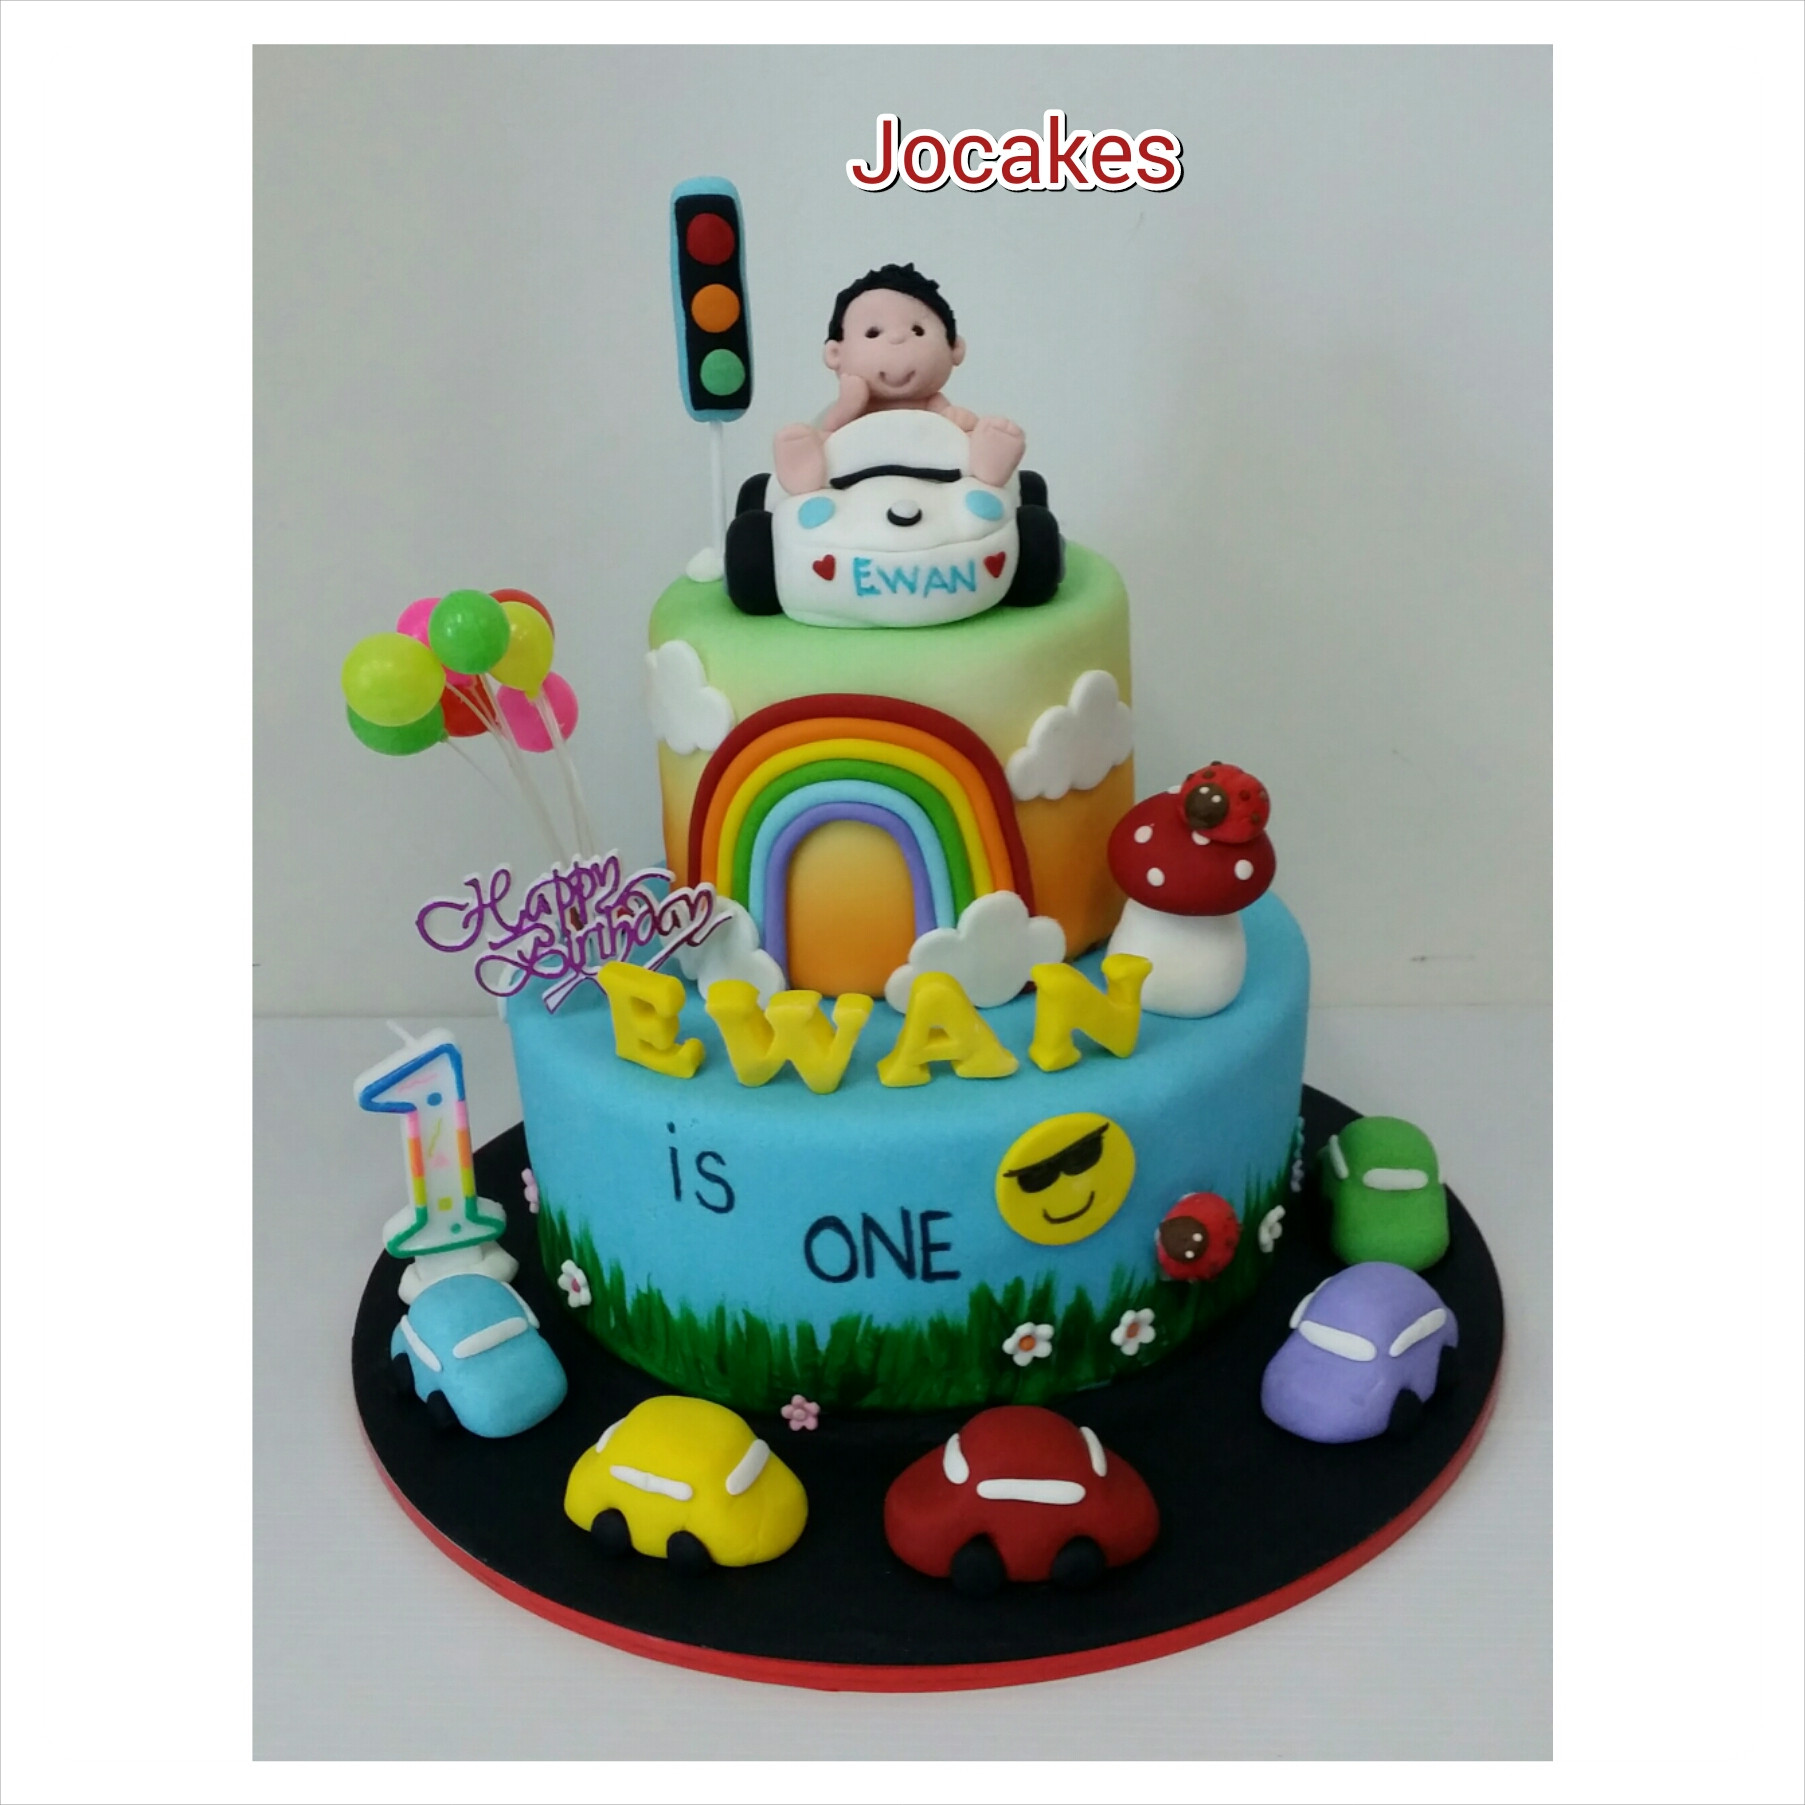 Best ideas about 1 Year Old Birthday Cake . Save or Pin 1 year old birthday cake jocakes Now.